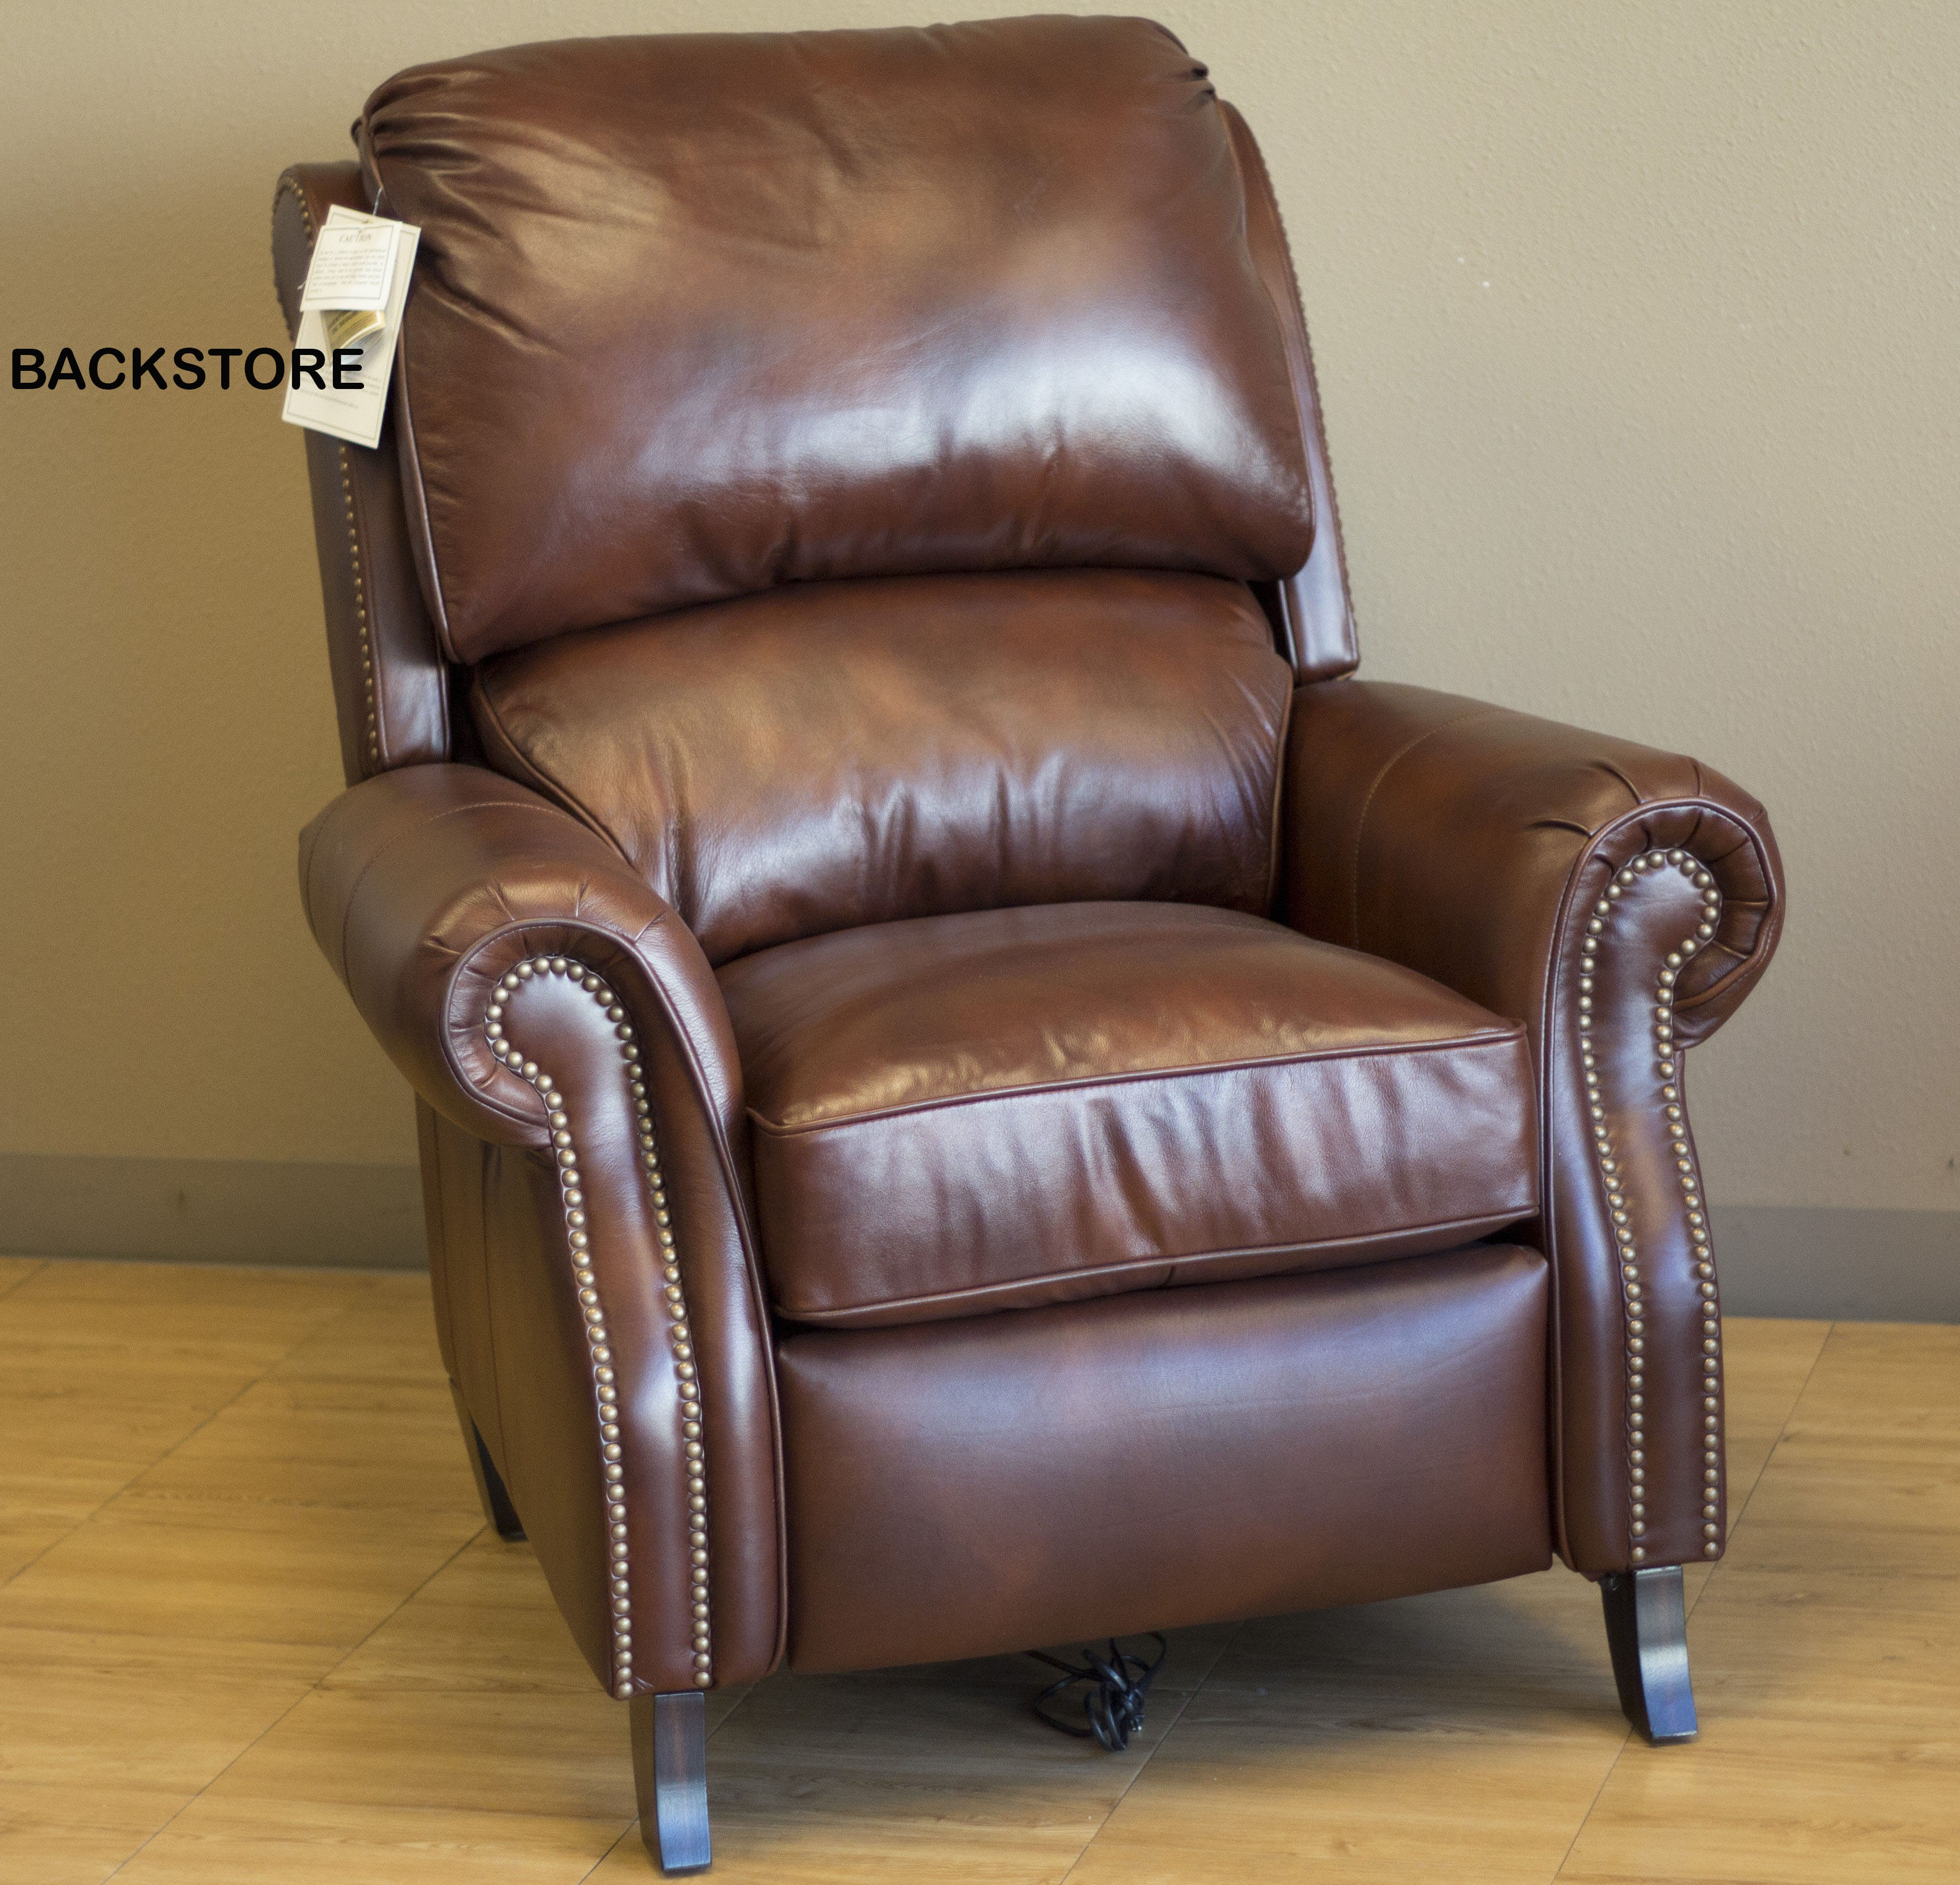 Barcalounger Churchill II Recliner Chair : brown leather recliner chairs - islam-shia.org